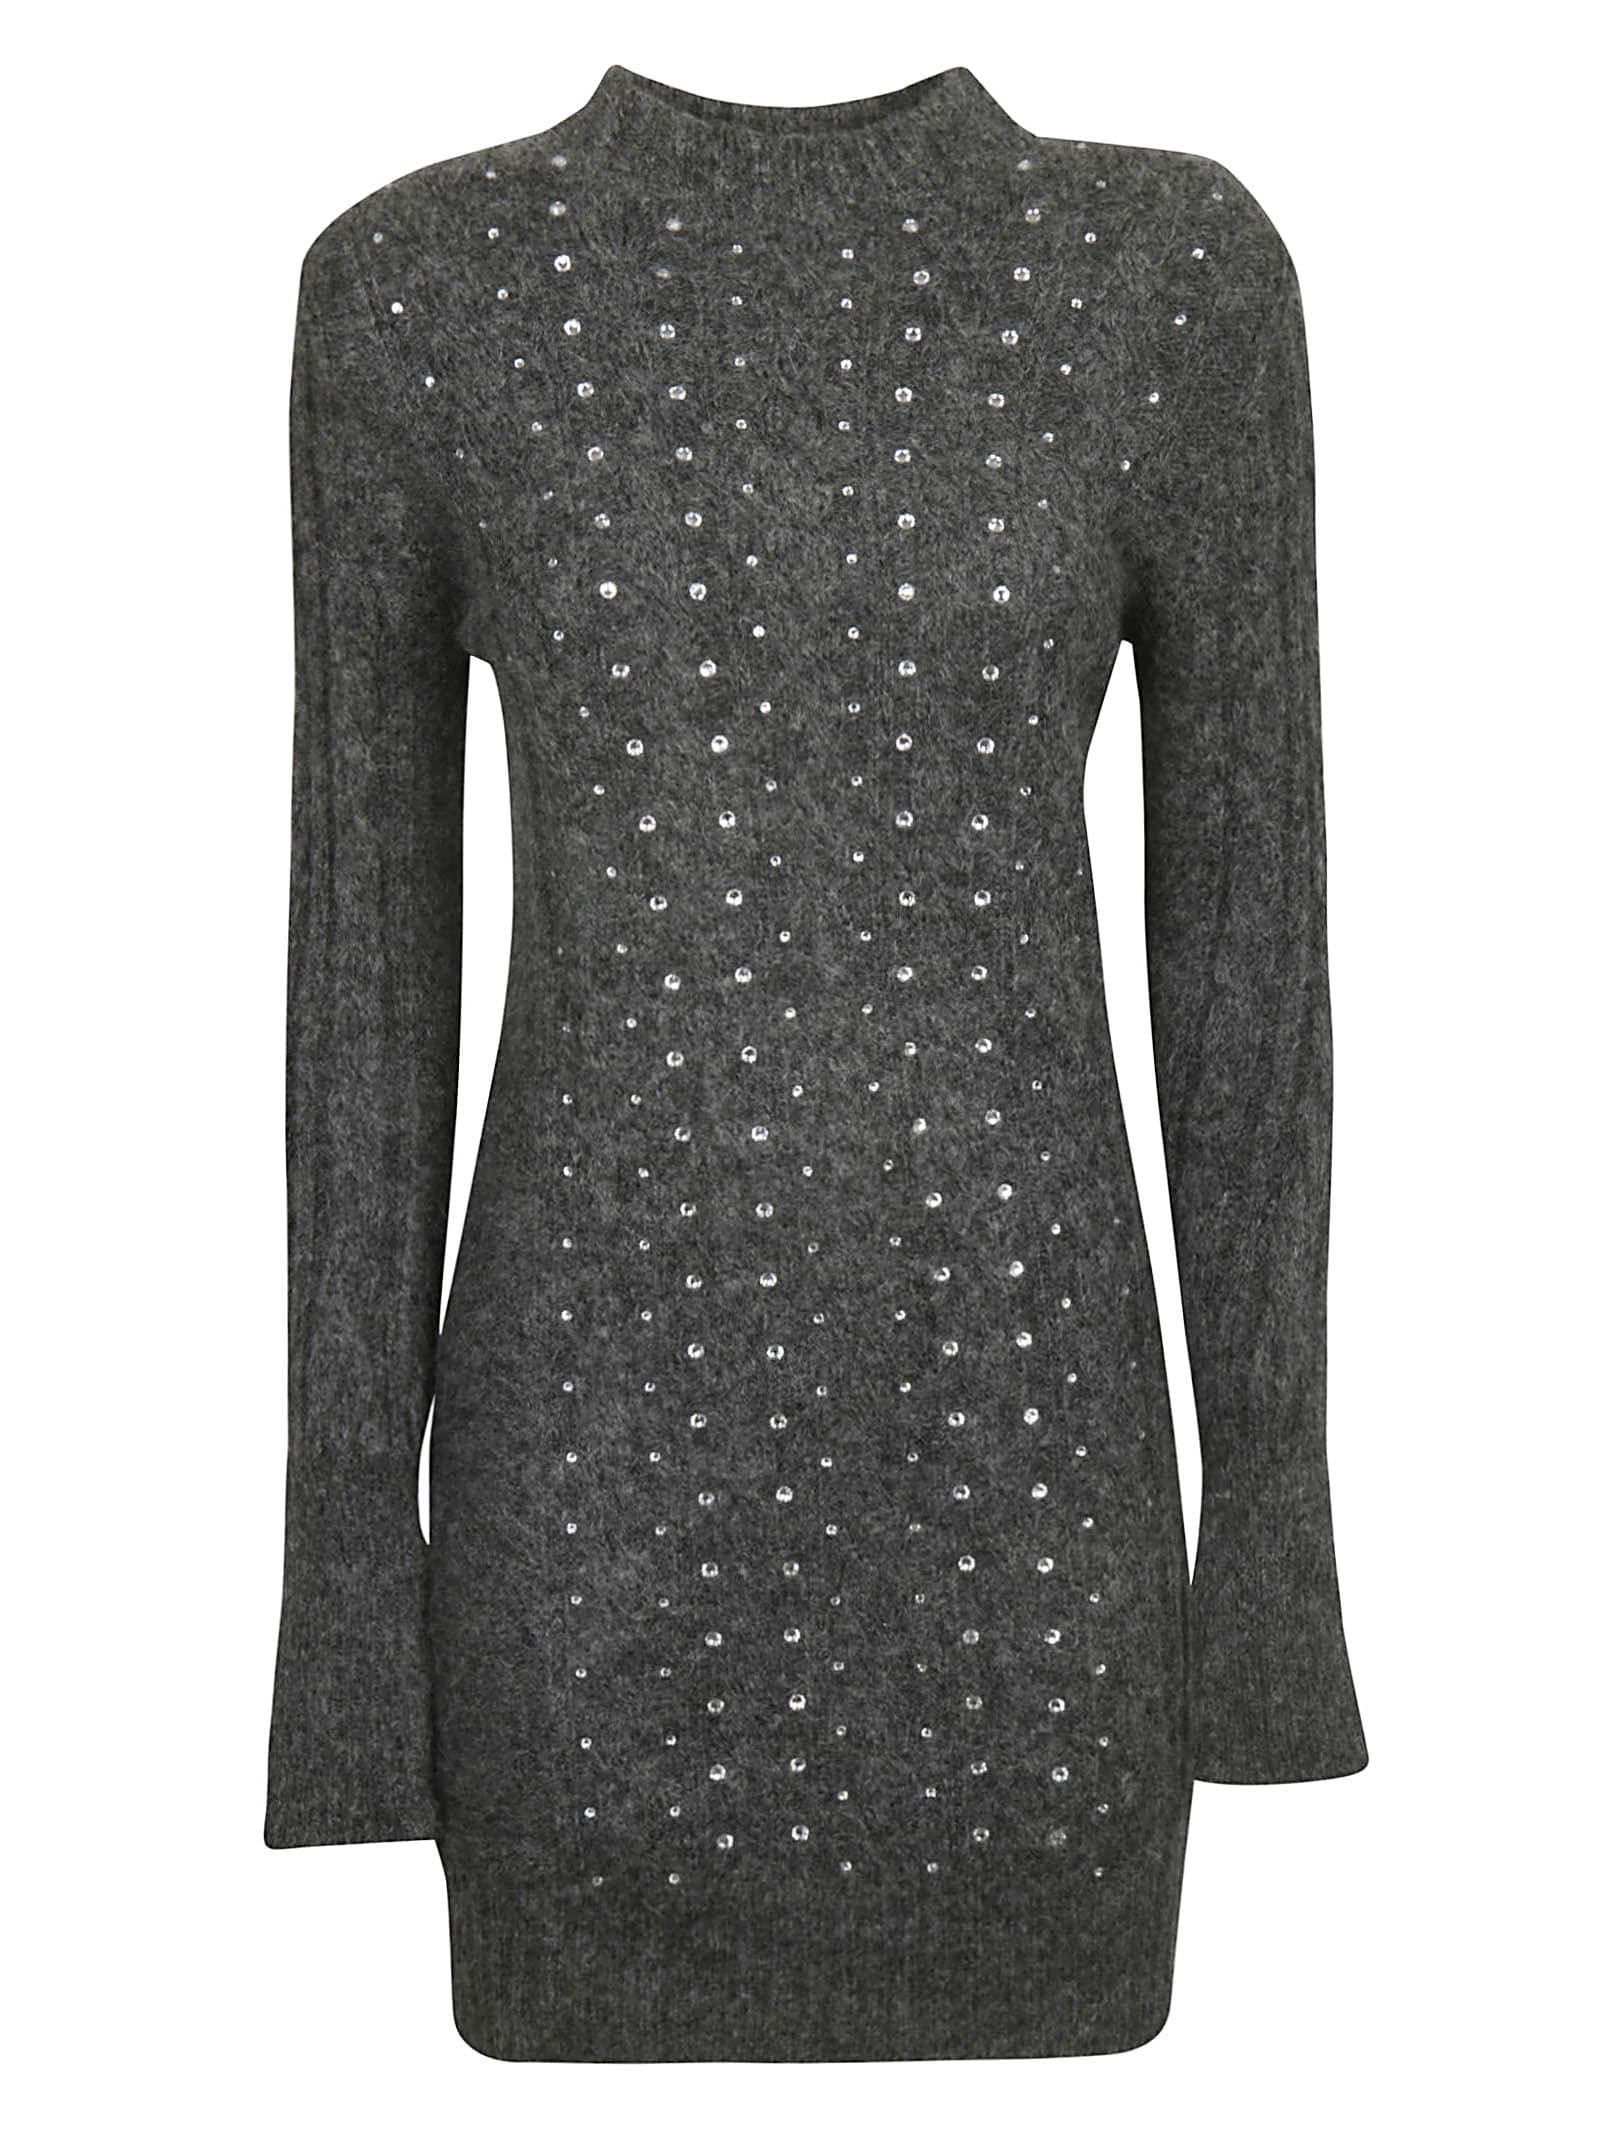 Philosophy di Lorenzo Serafini Embellished Dress